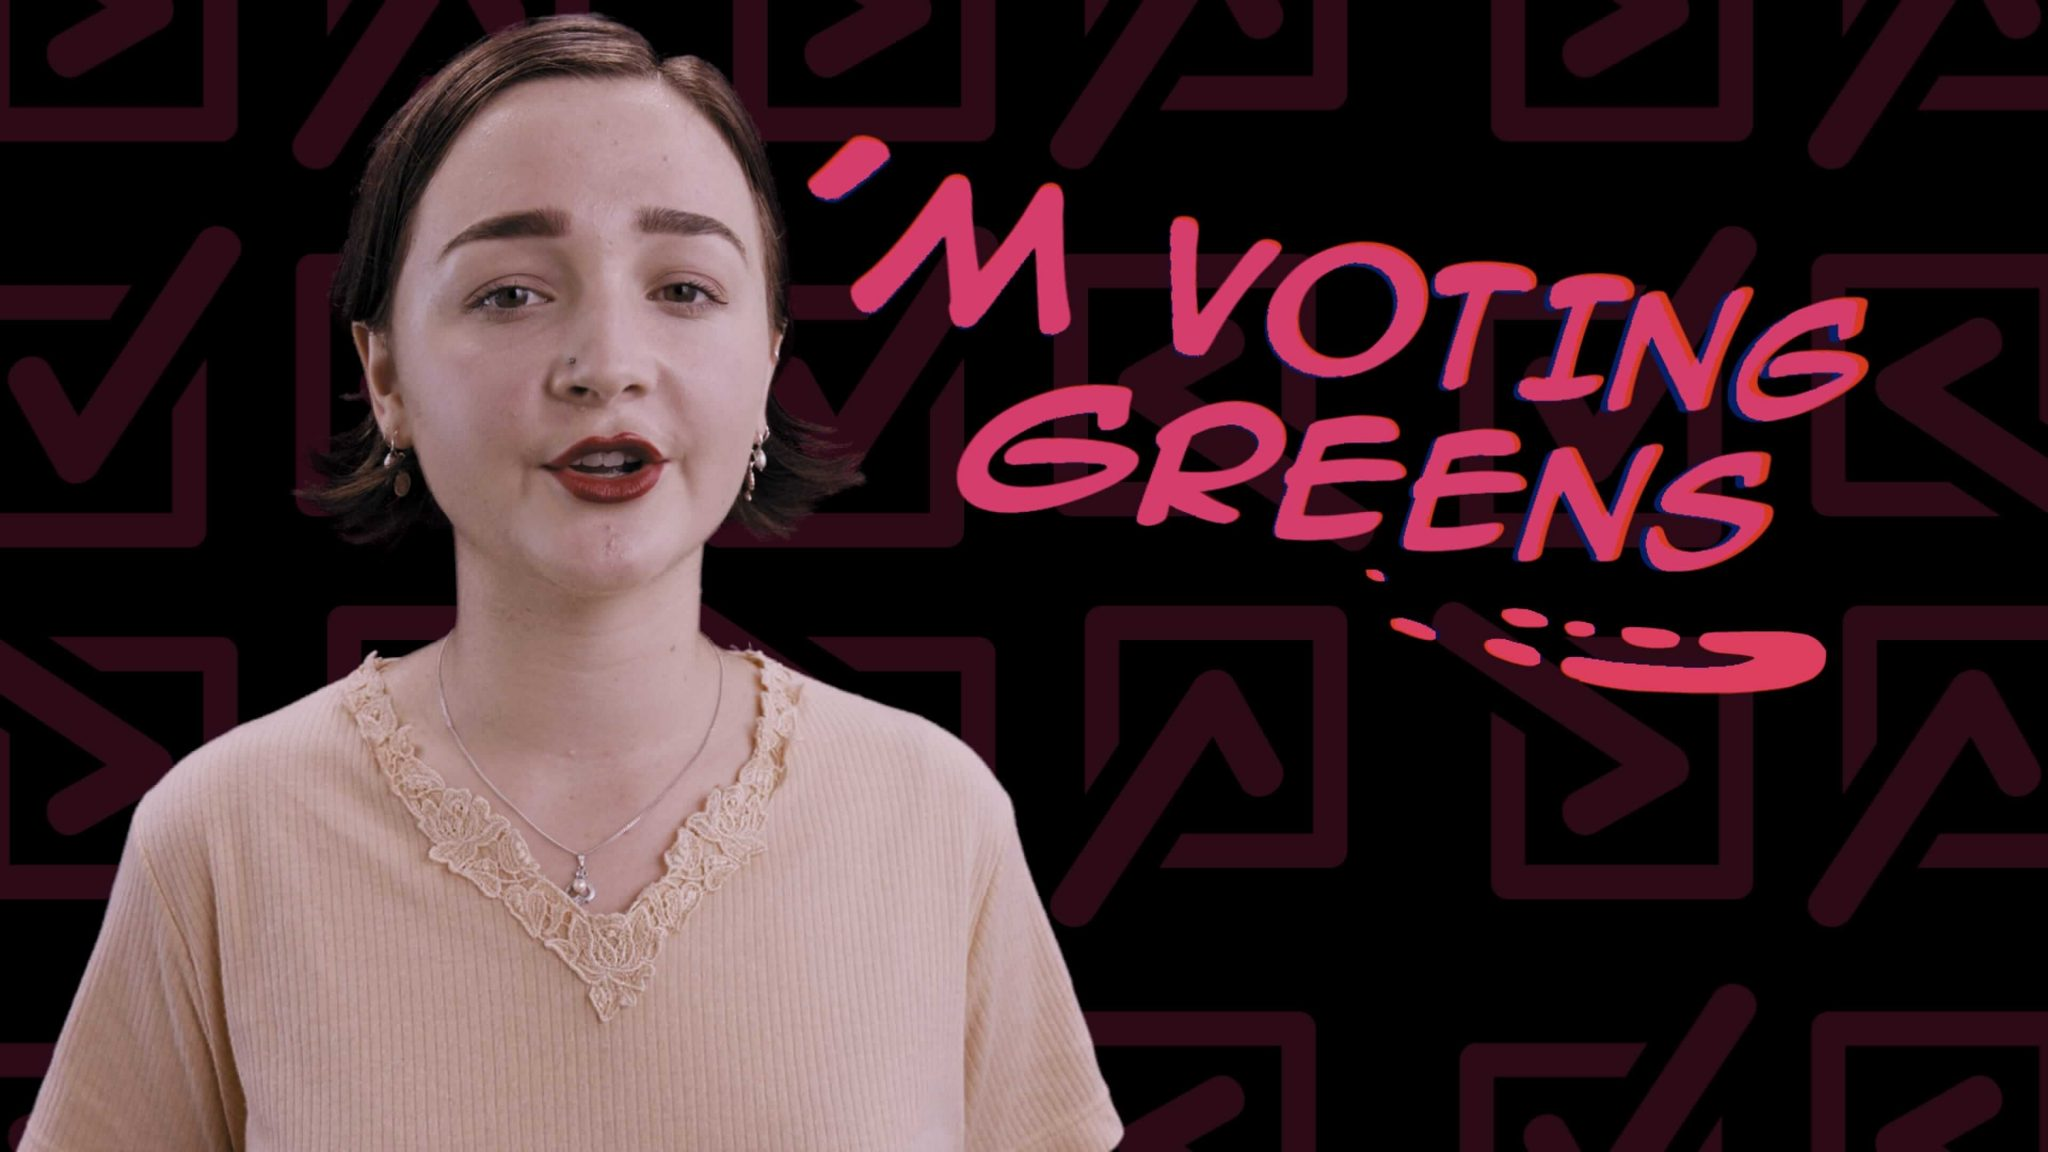 typo_I'm Voting Green_2019-03-27_17.40.28 (1)